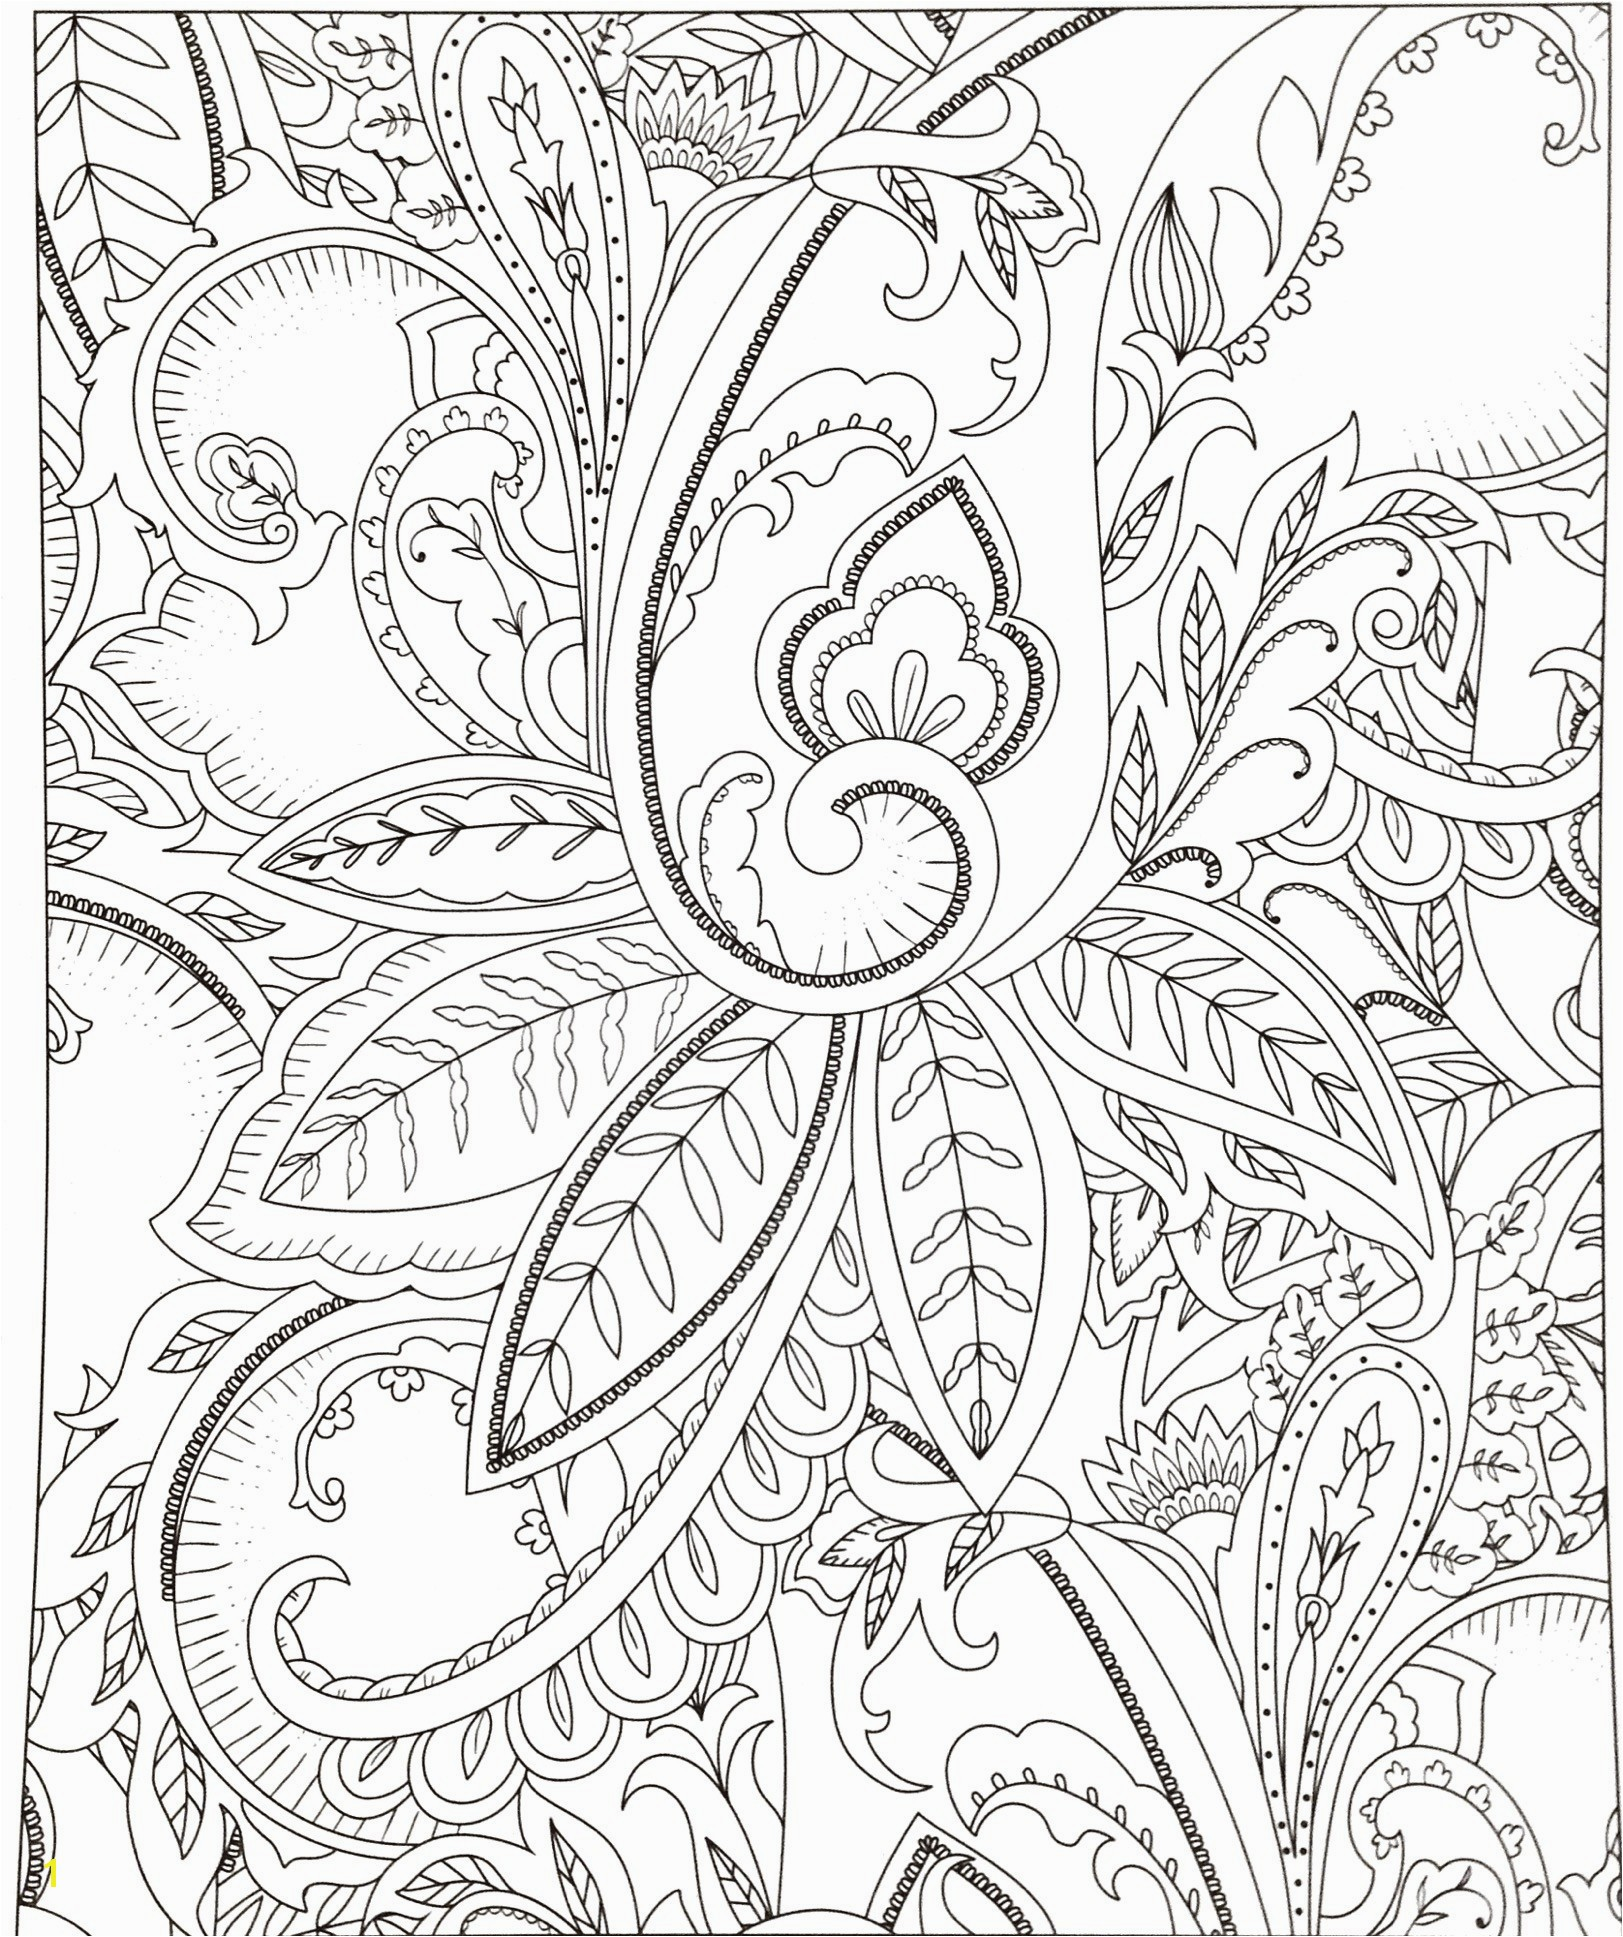 Free Christmas Coloring Pages to Print for Adults Inspirational Cool Coloring Printables 0d – Fun Time